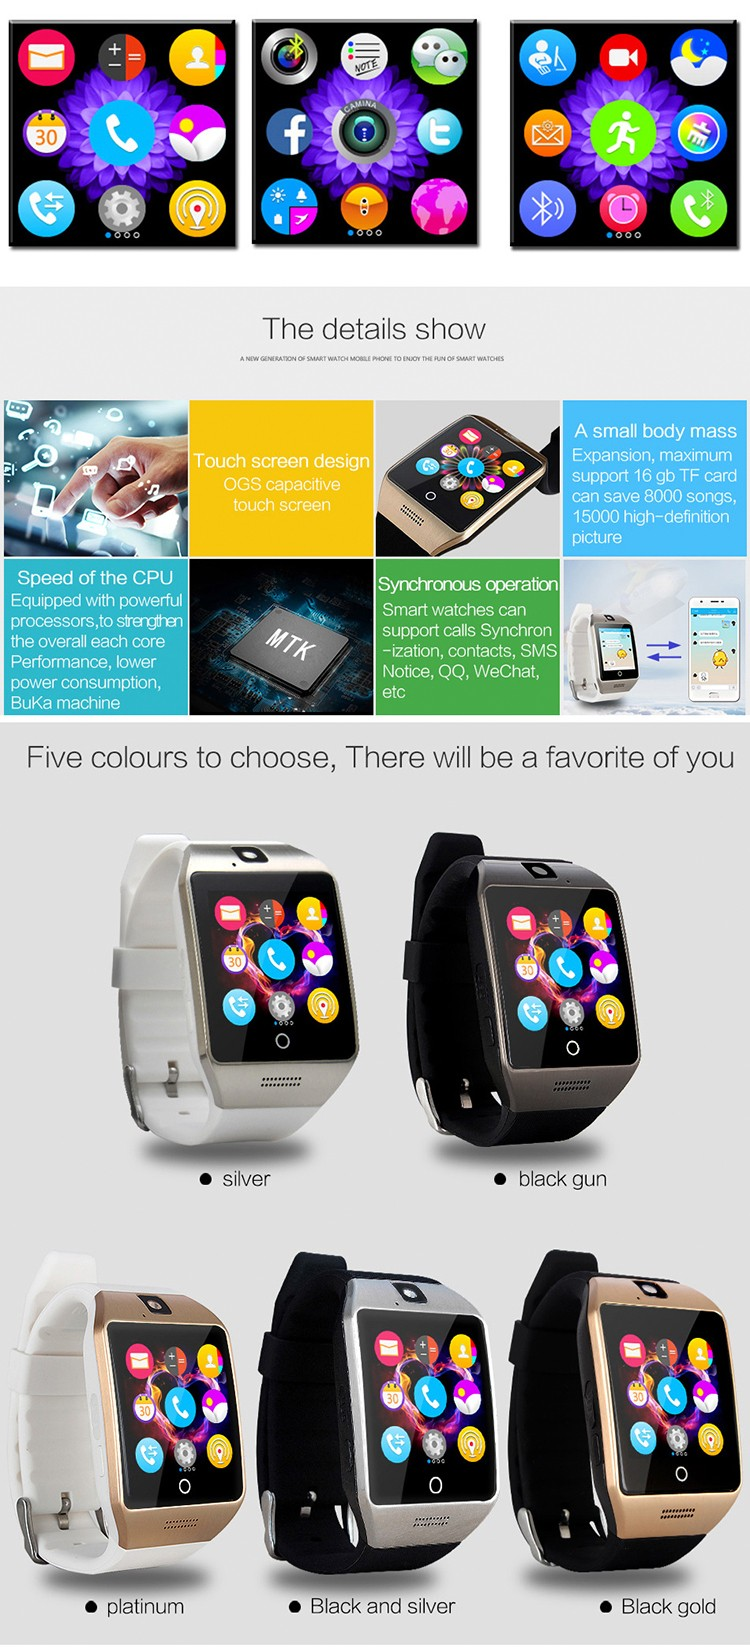 Q18S hd camera NFC supported hands free phone answering bluetooth 3.0 OGS touch screen phone smart watch